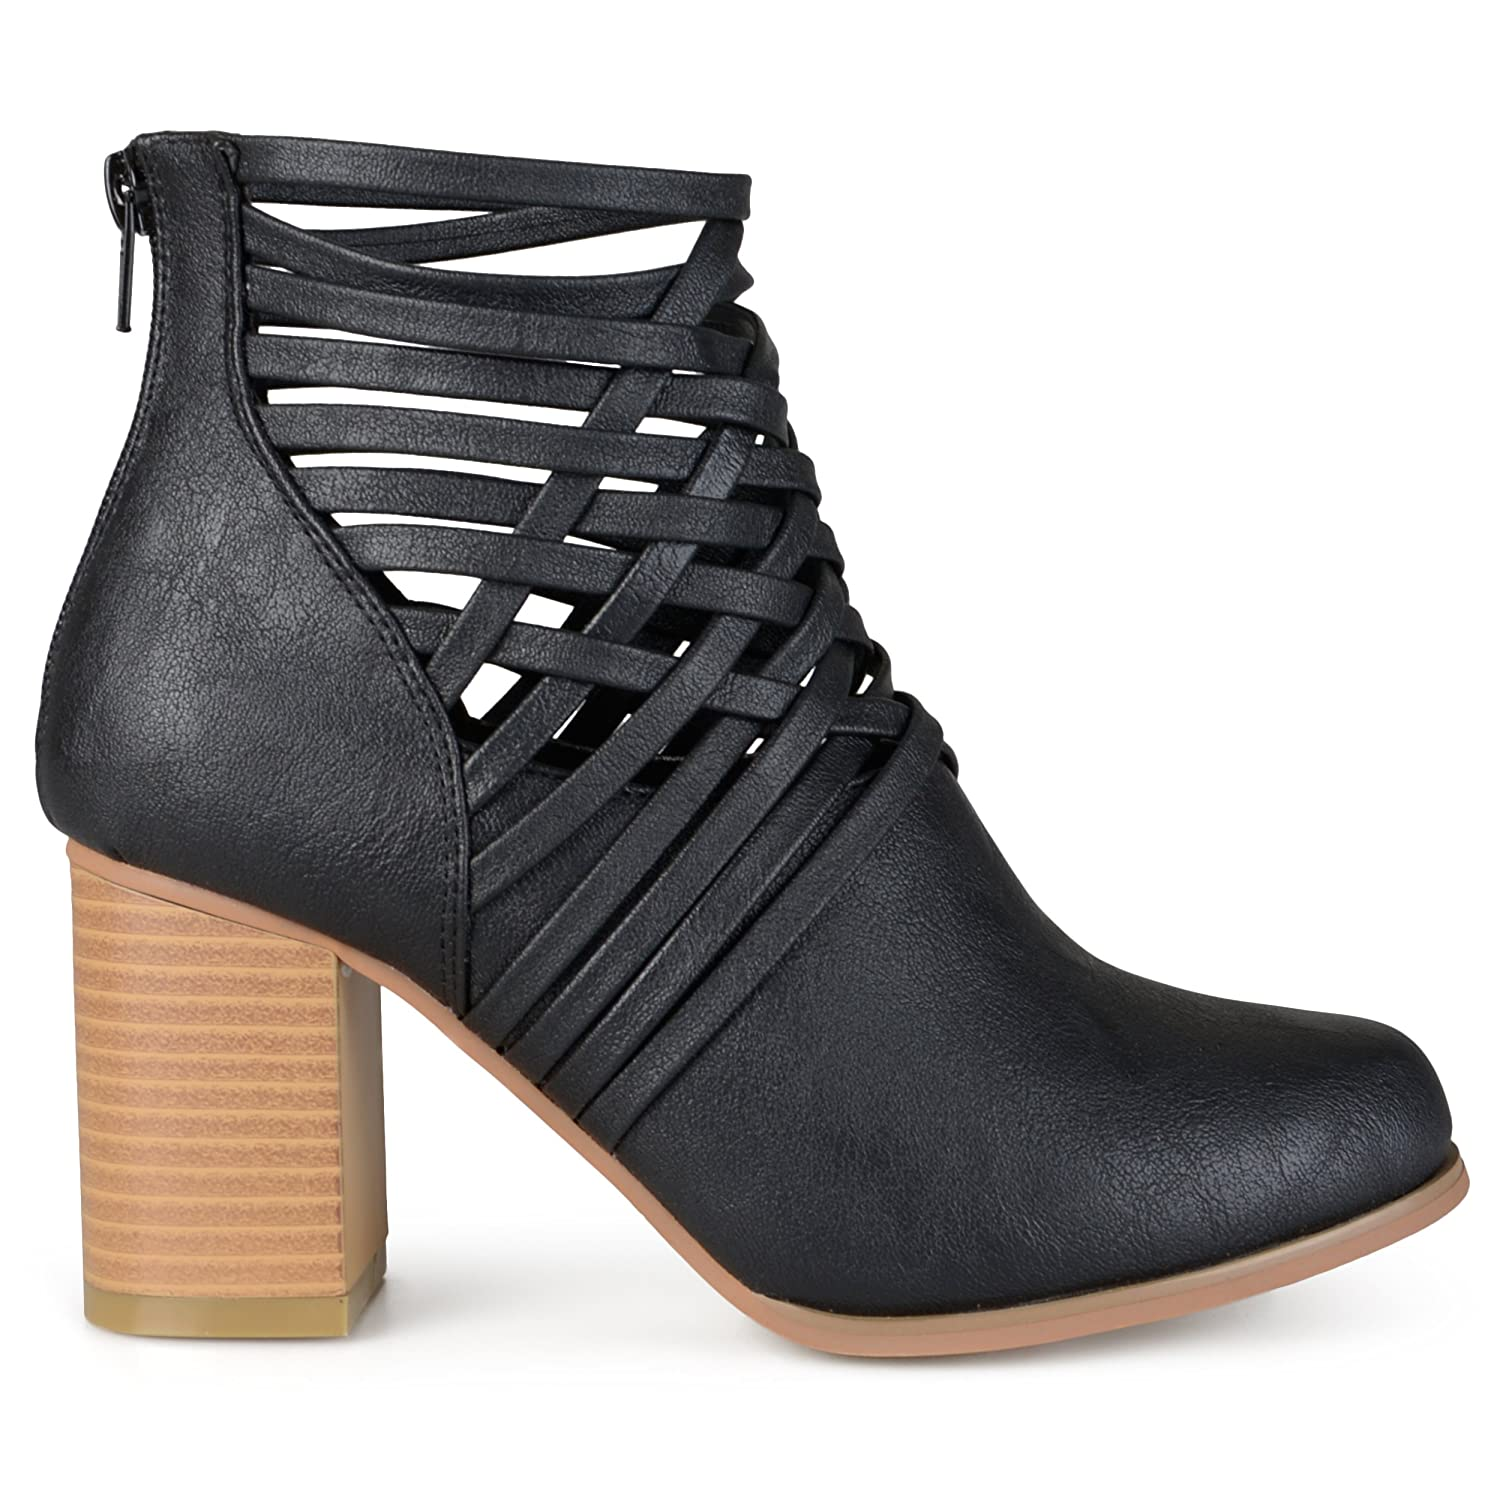 Brinley Co. Womens Chunky Heel Strappy Round Toe Booties